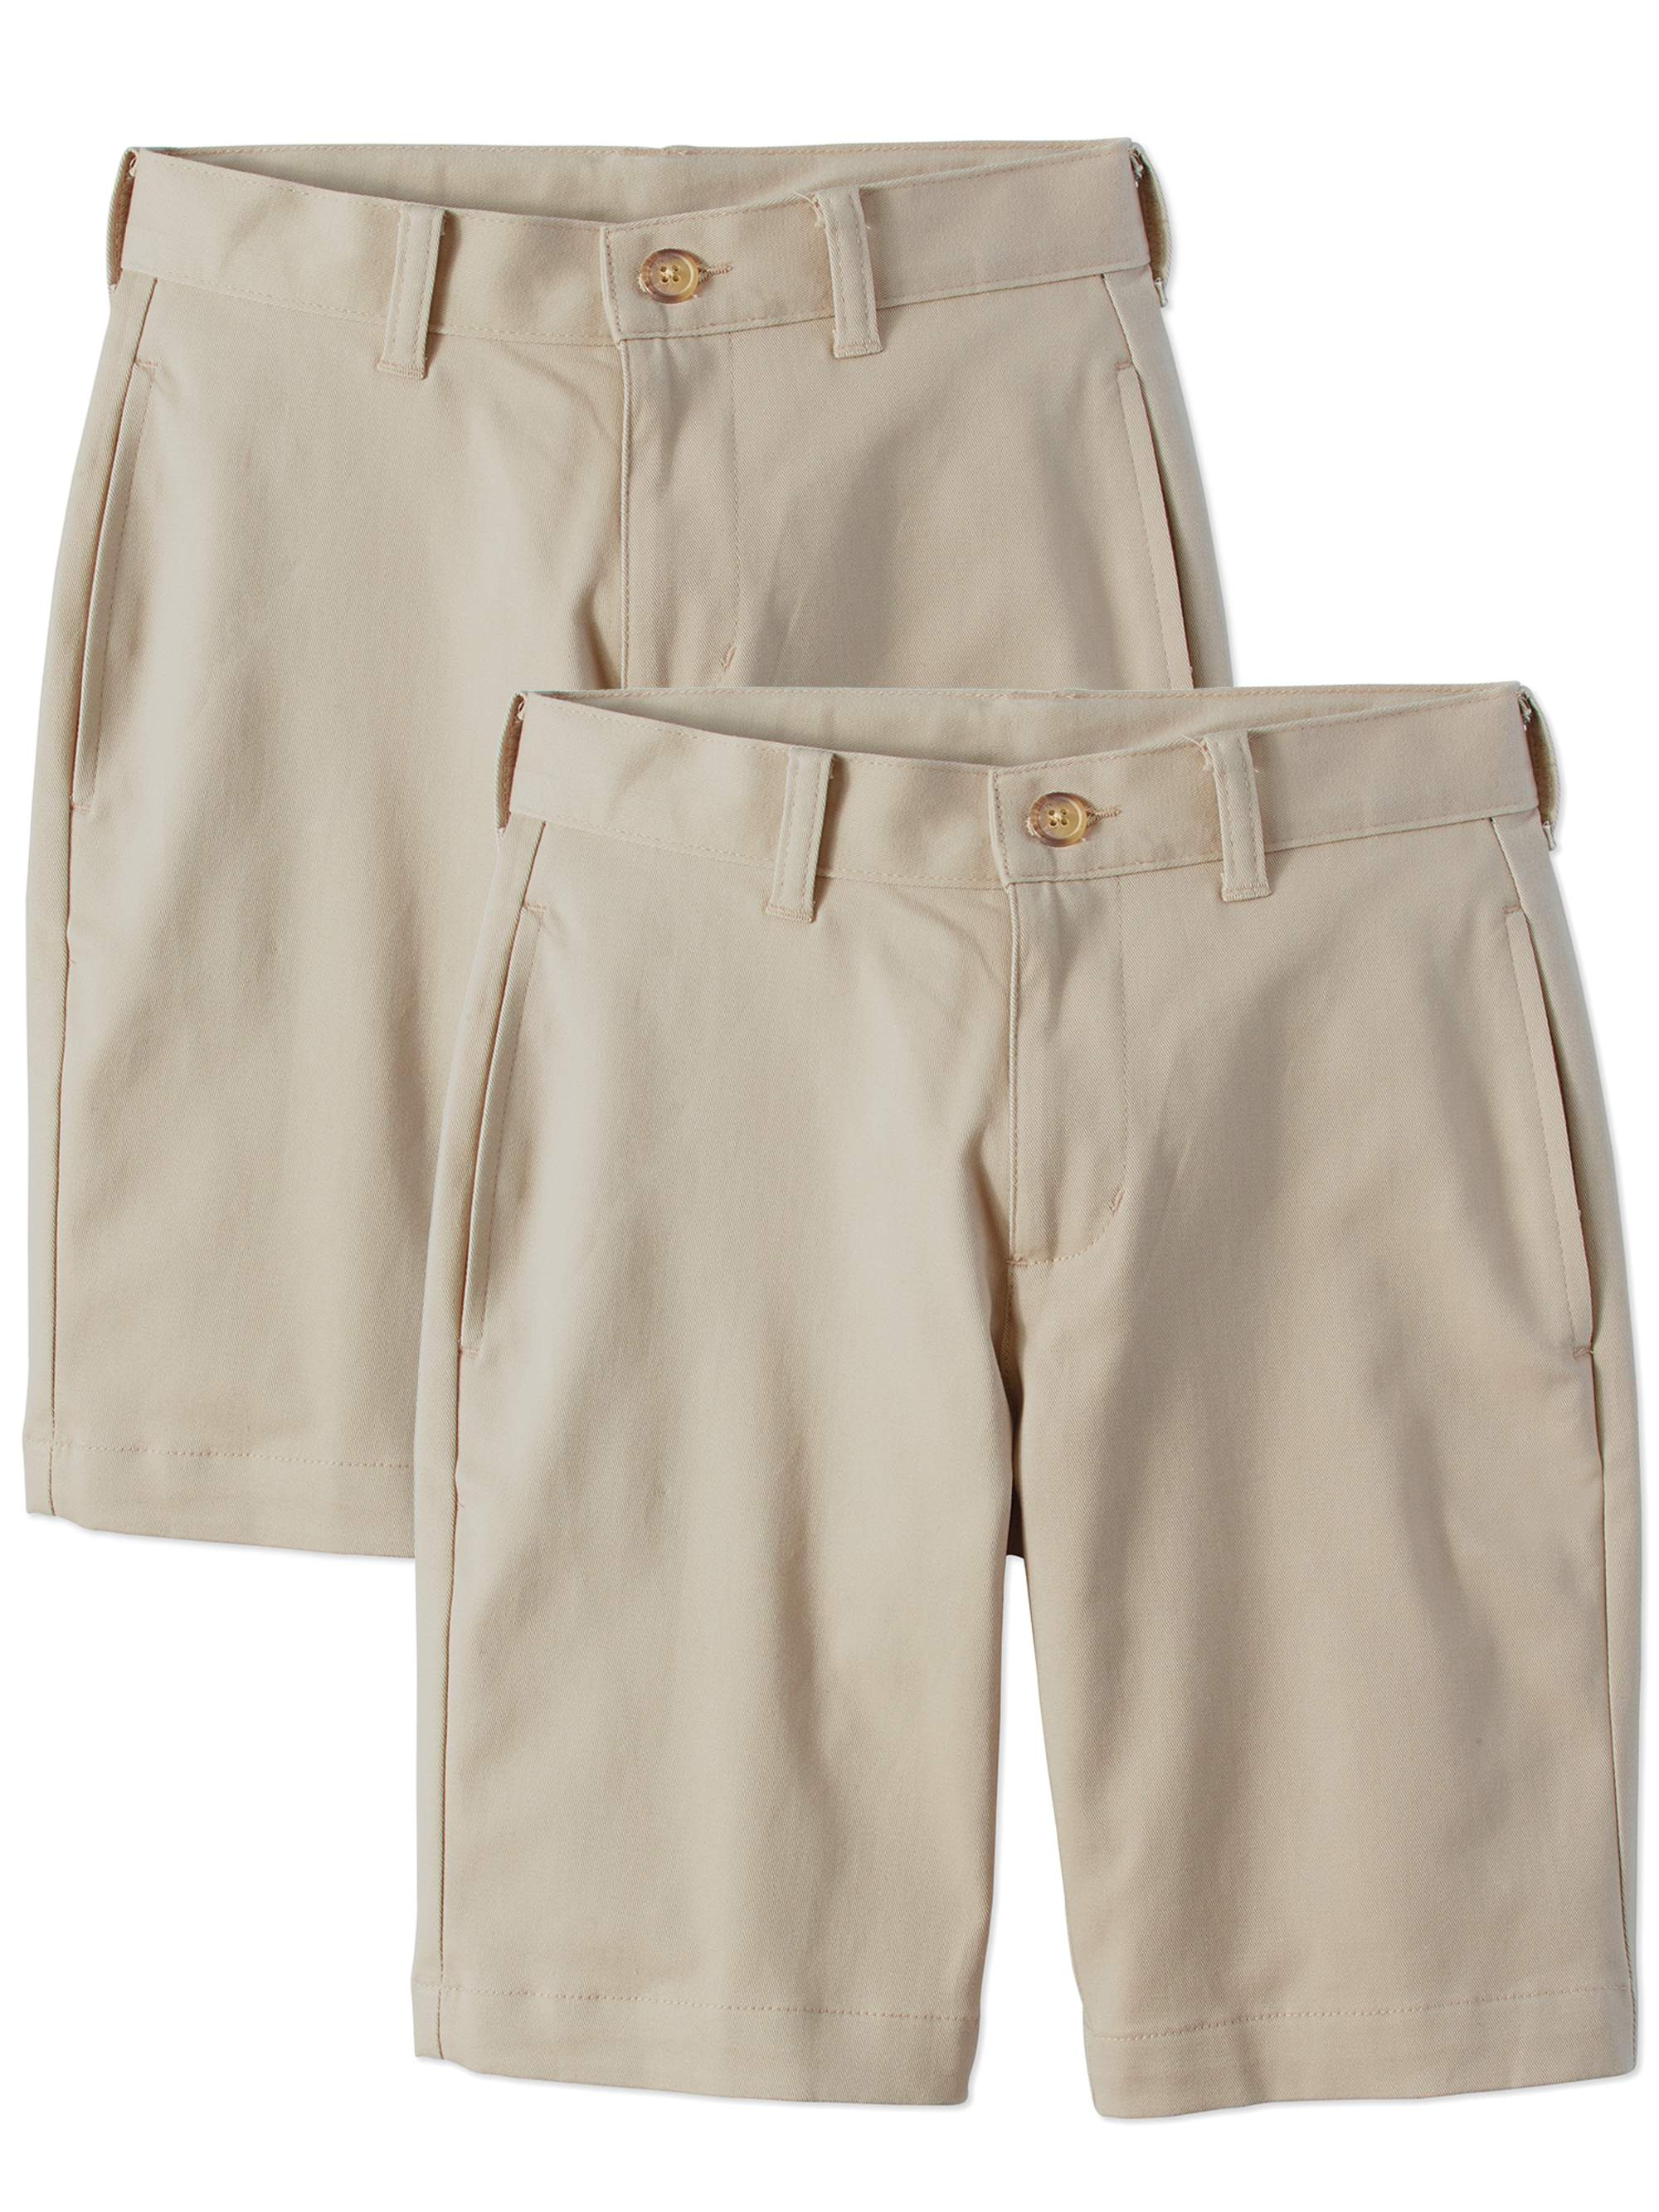 Boys School Uniform Super Soft Flat Front Shorts, 2-Pack Value Bundle